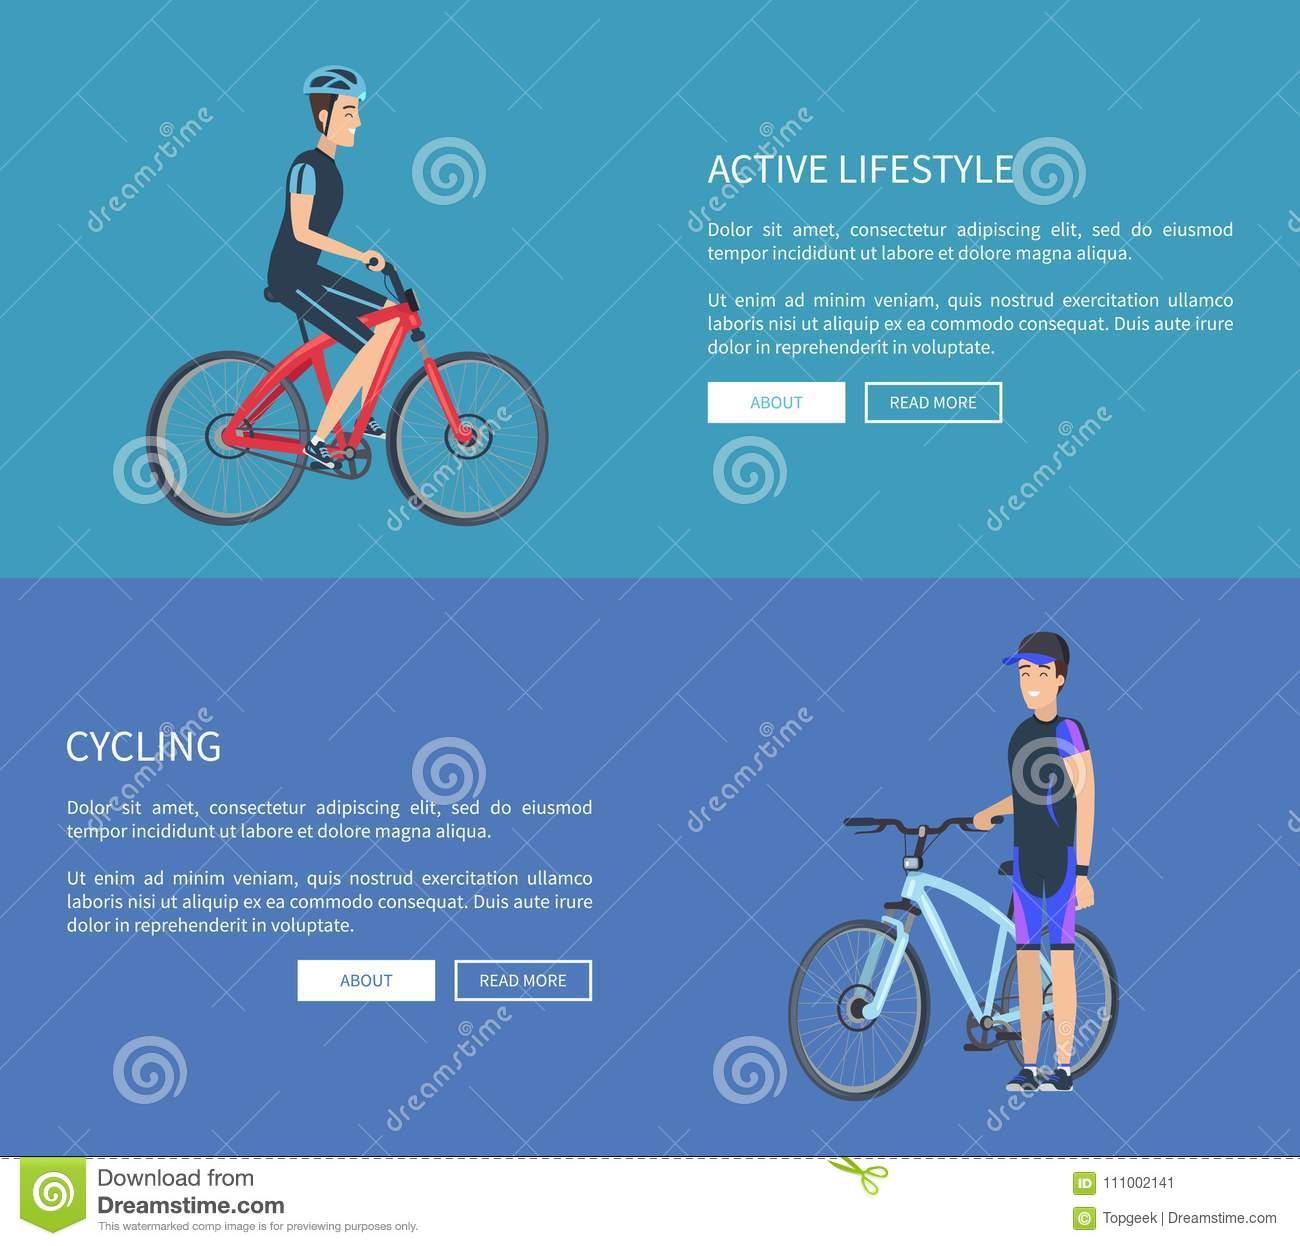 Active Lifestyle Cycling Web Vector Illustration